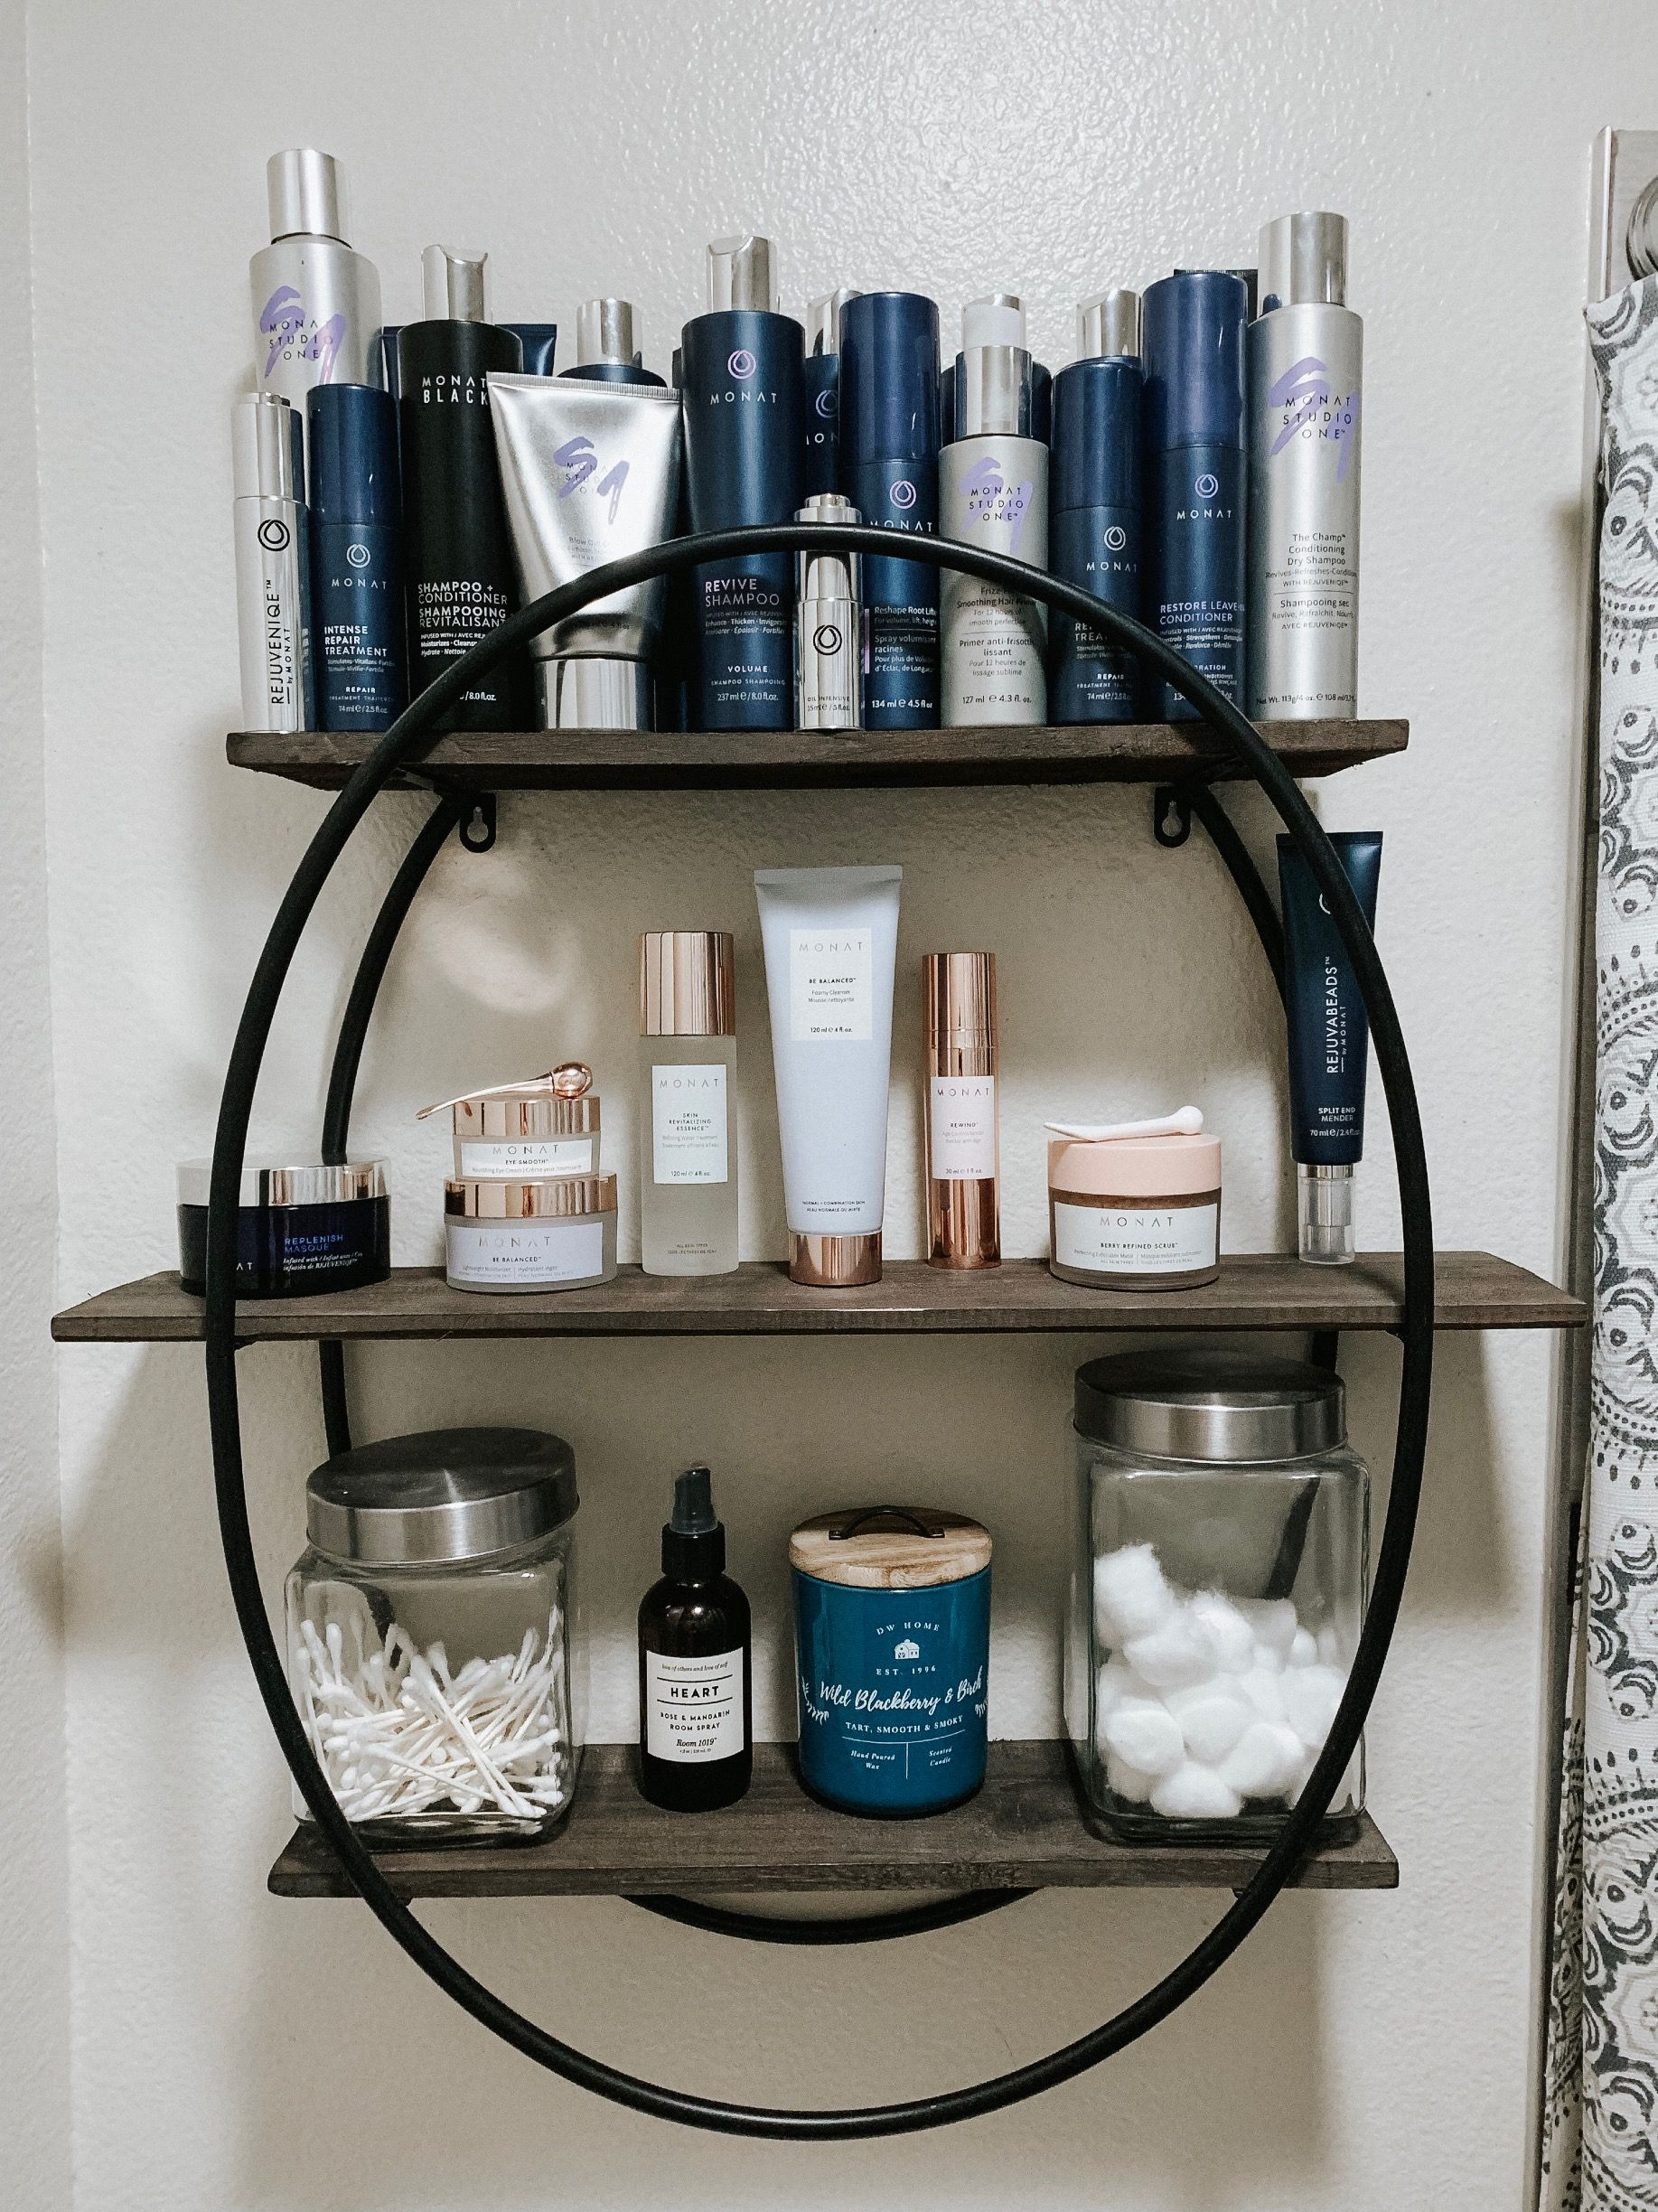 Monat products